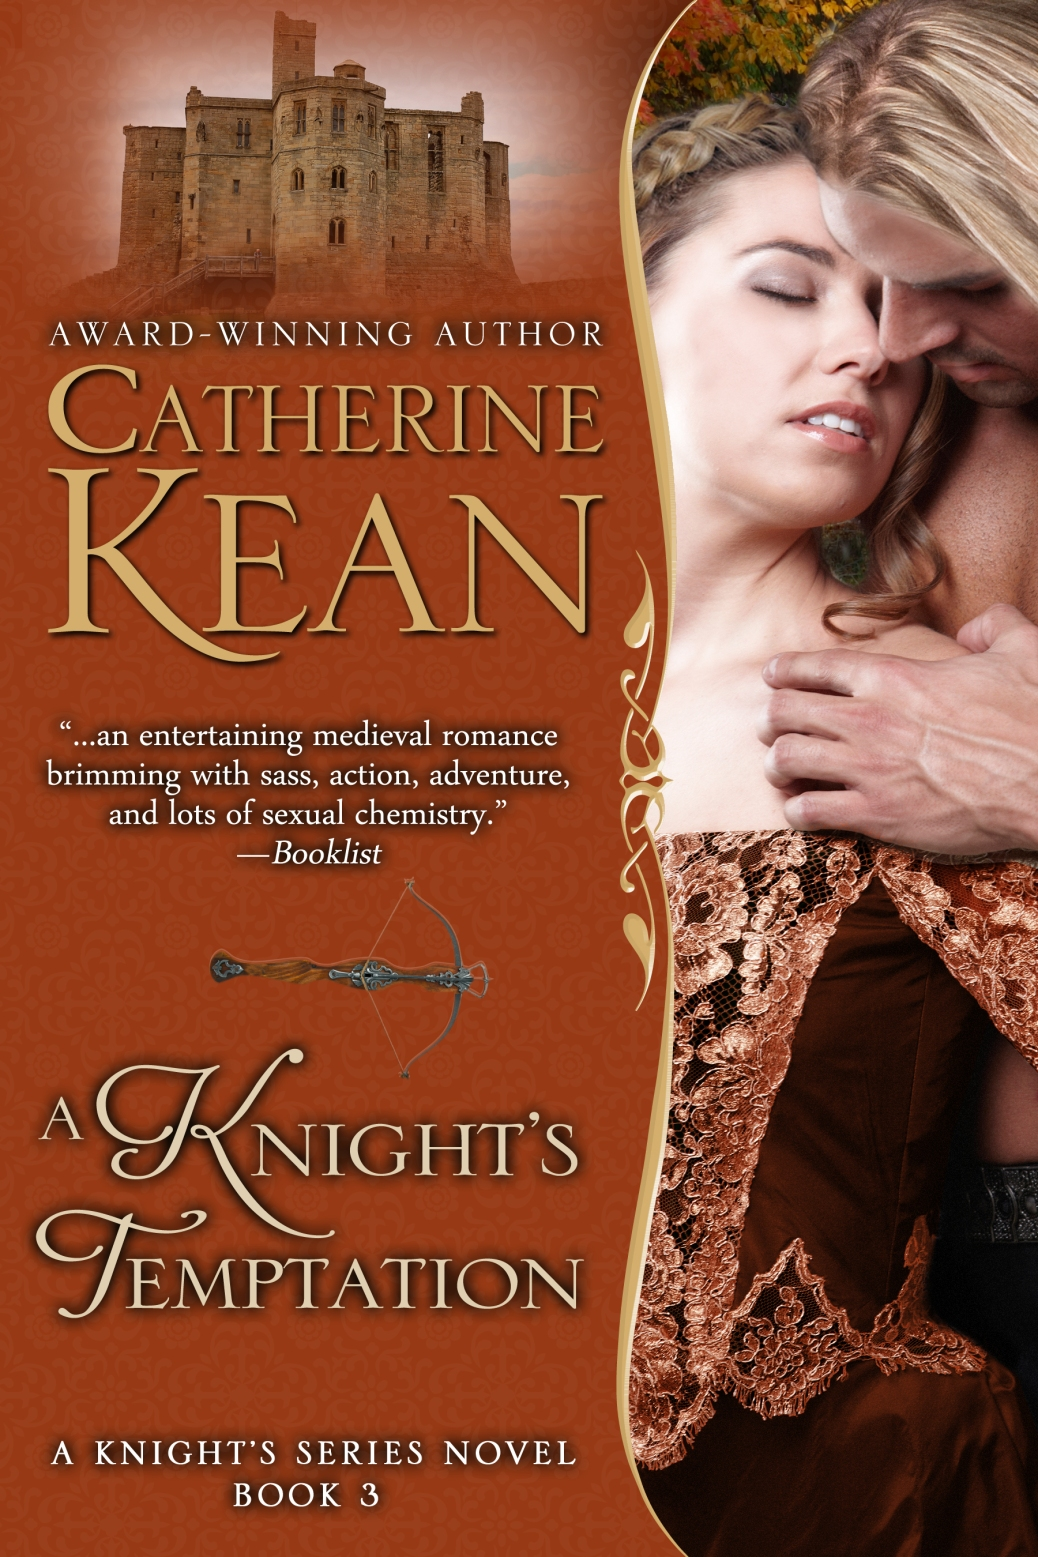 CatherineKean_AKnightsTemptation_HR